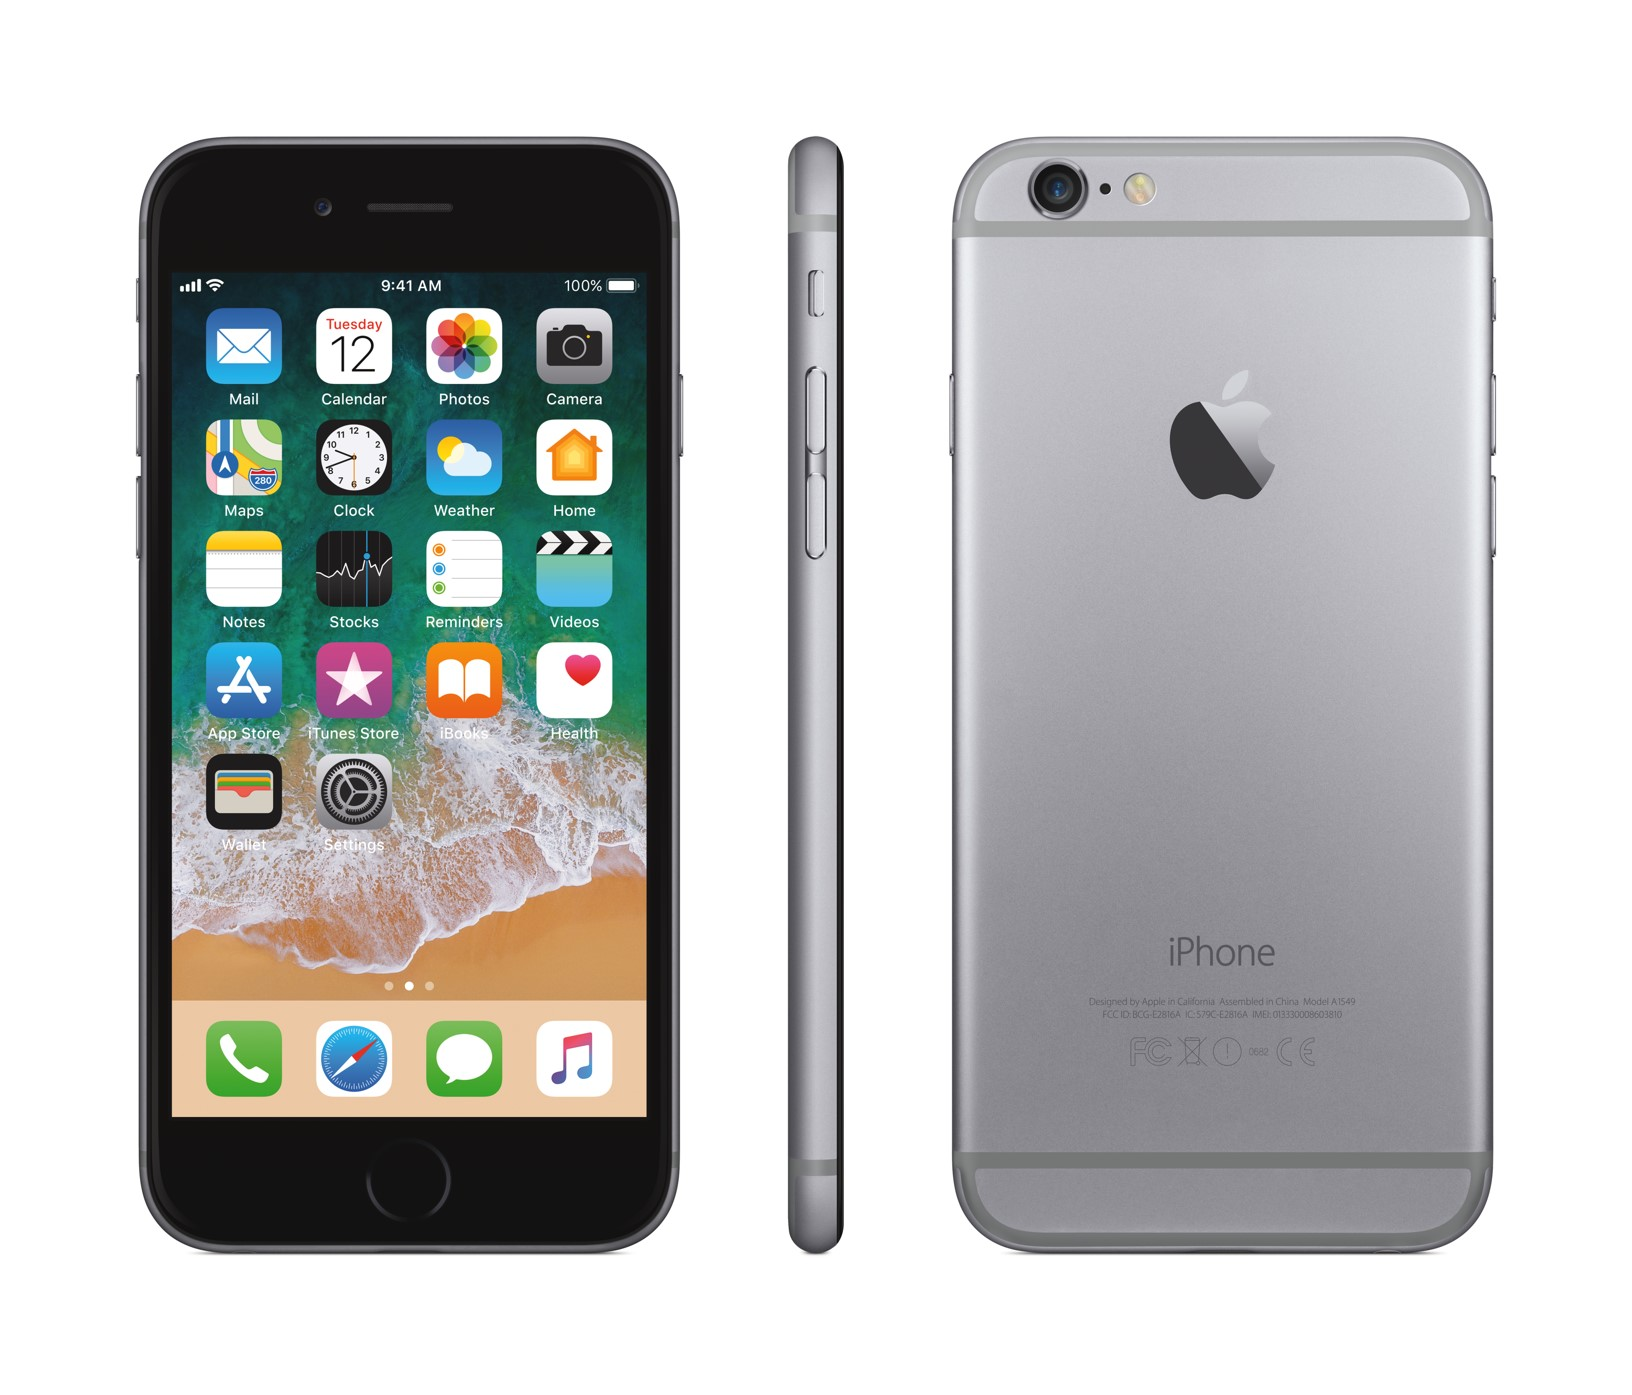 iPhone 6 at amazing price for Christmas Festive Season